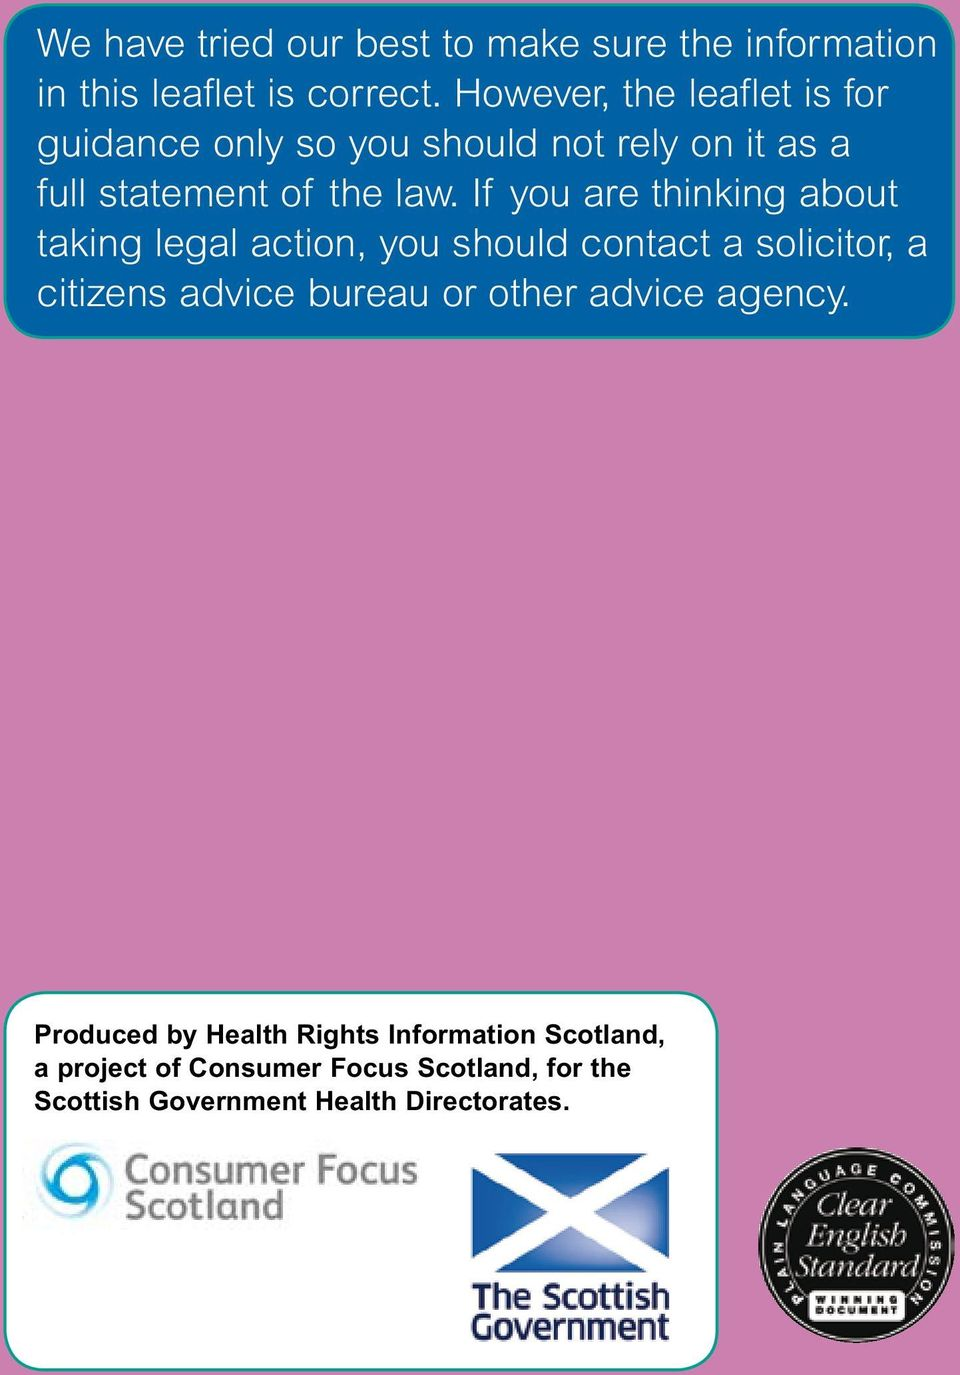 If you are thinking about taking legal action, you should contact a solicitor, a citizens advice bureau or